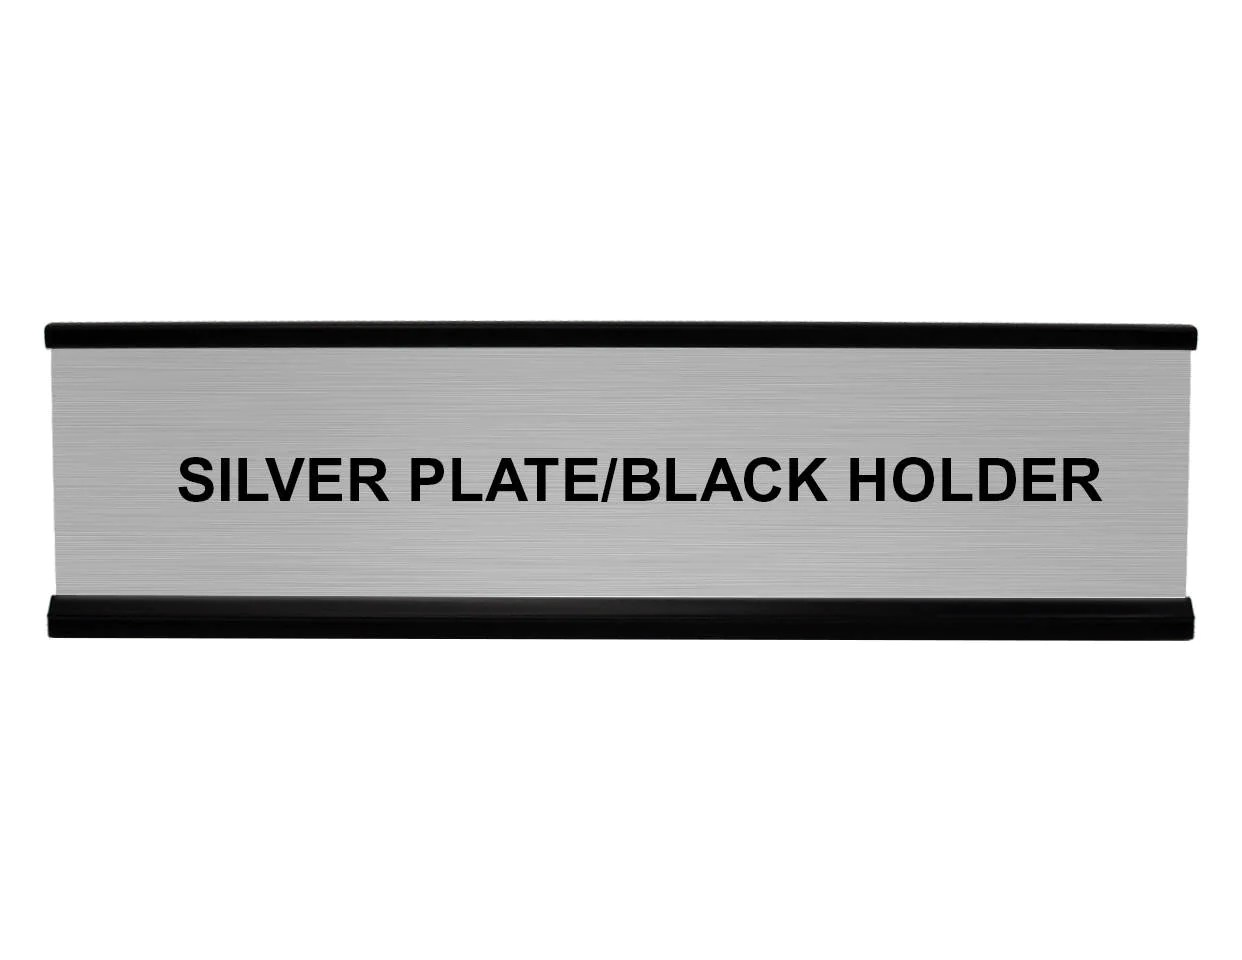 Custom Name Desk Plate  Personalized Name Plate  Choose Your image 7